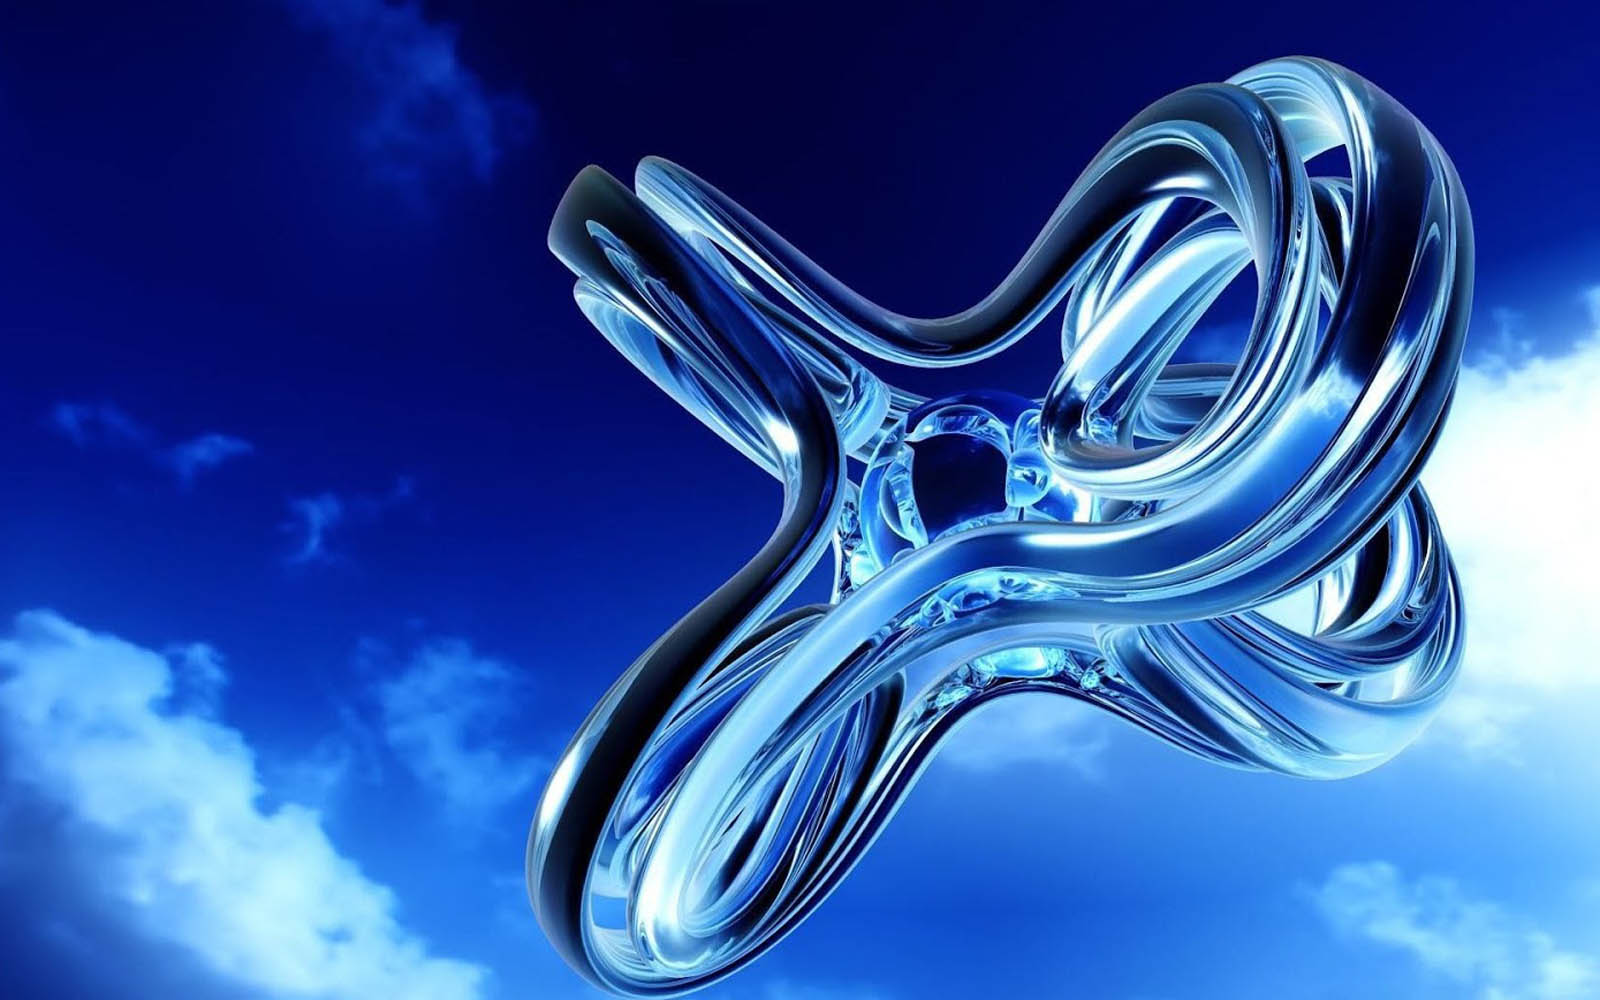 Tag Blue 3D Wallpapers Backgrounds Photos Images and Pictures for 1600x1000